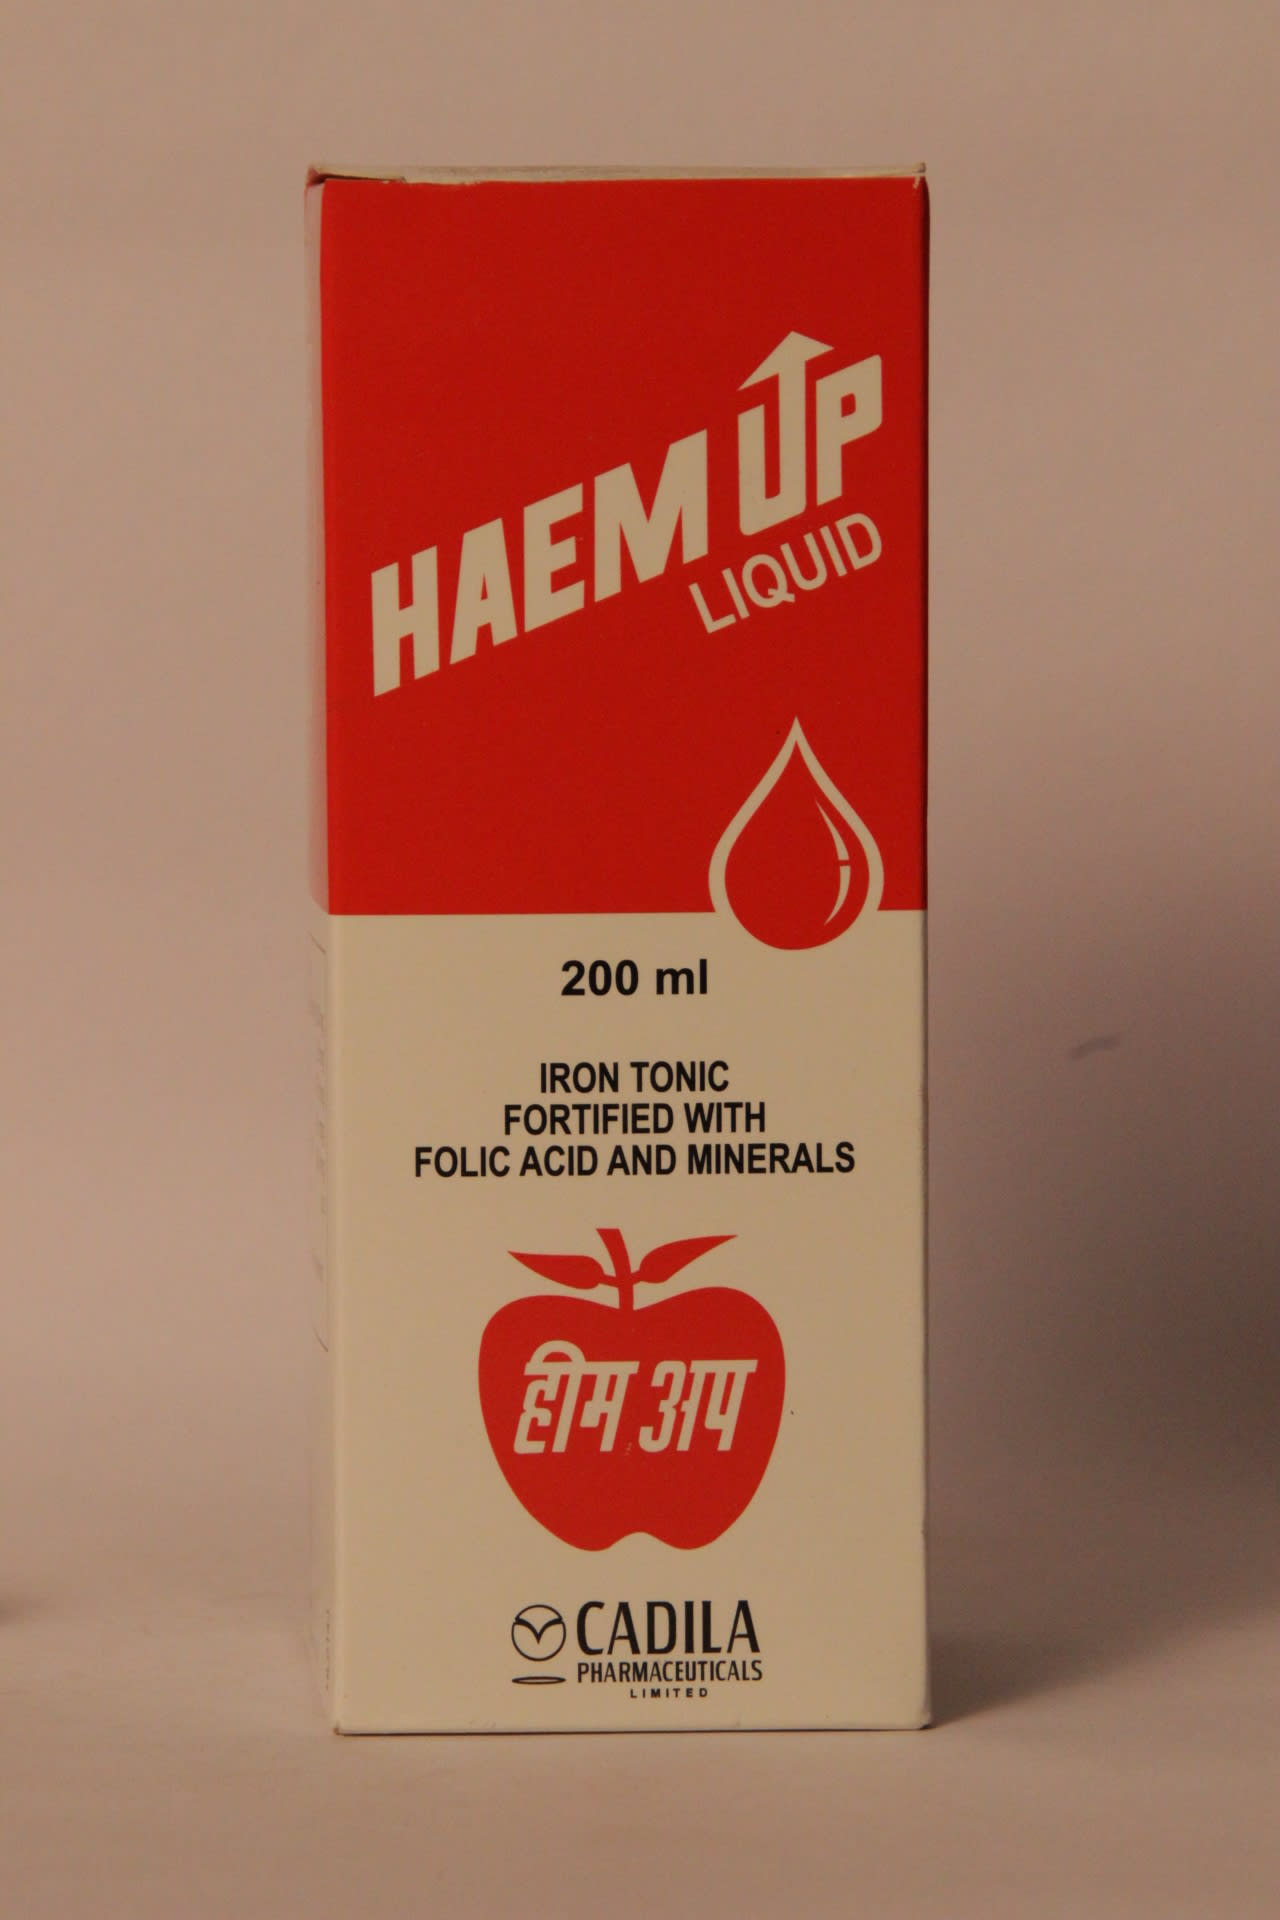 Haem UP Liquid